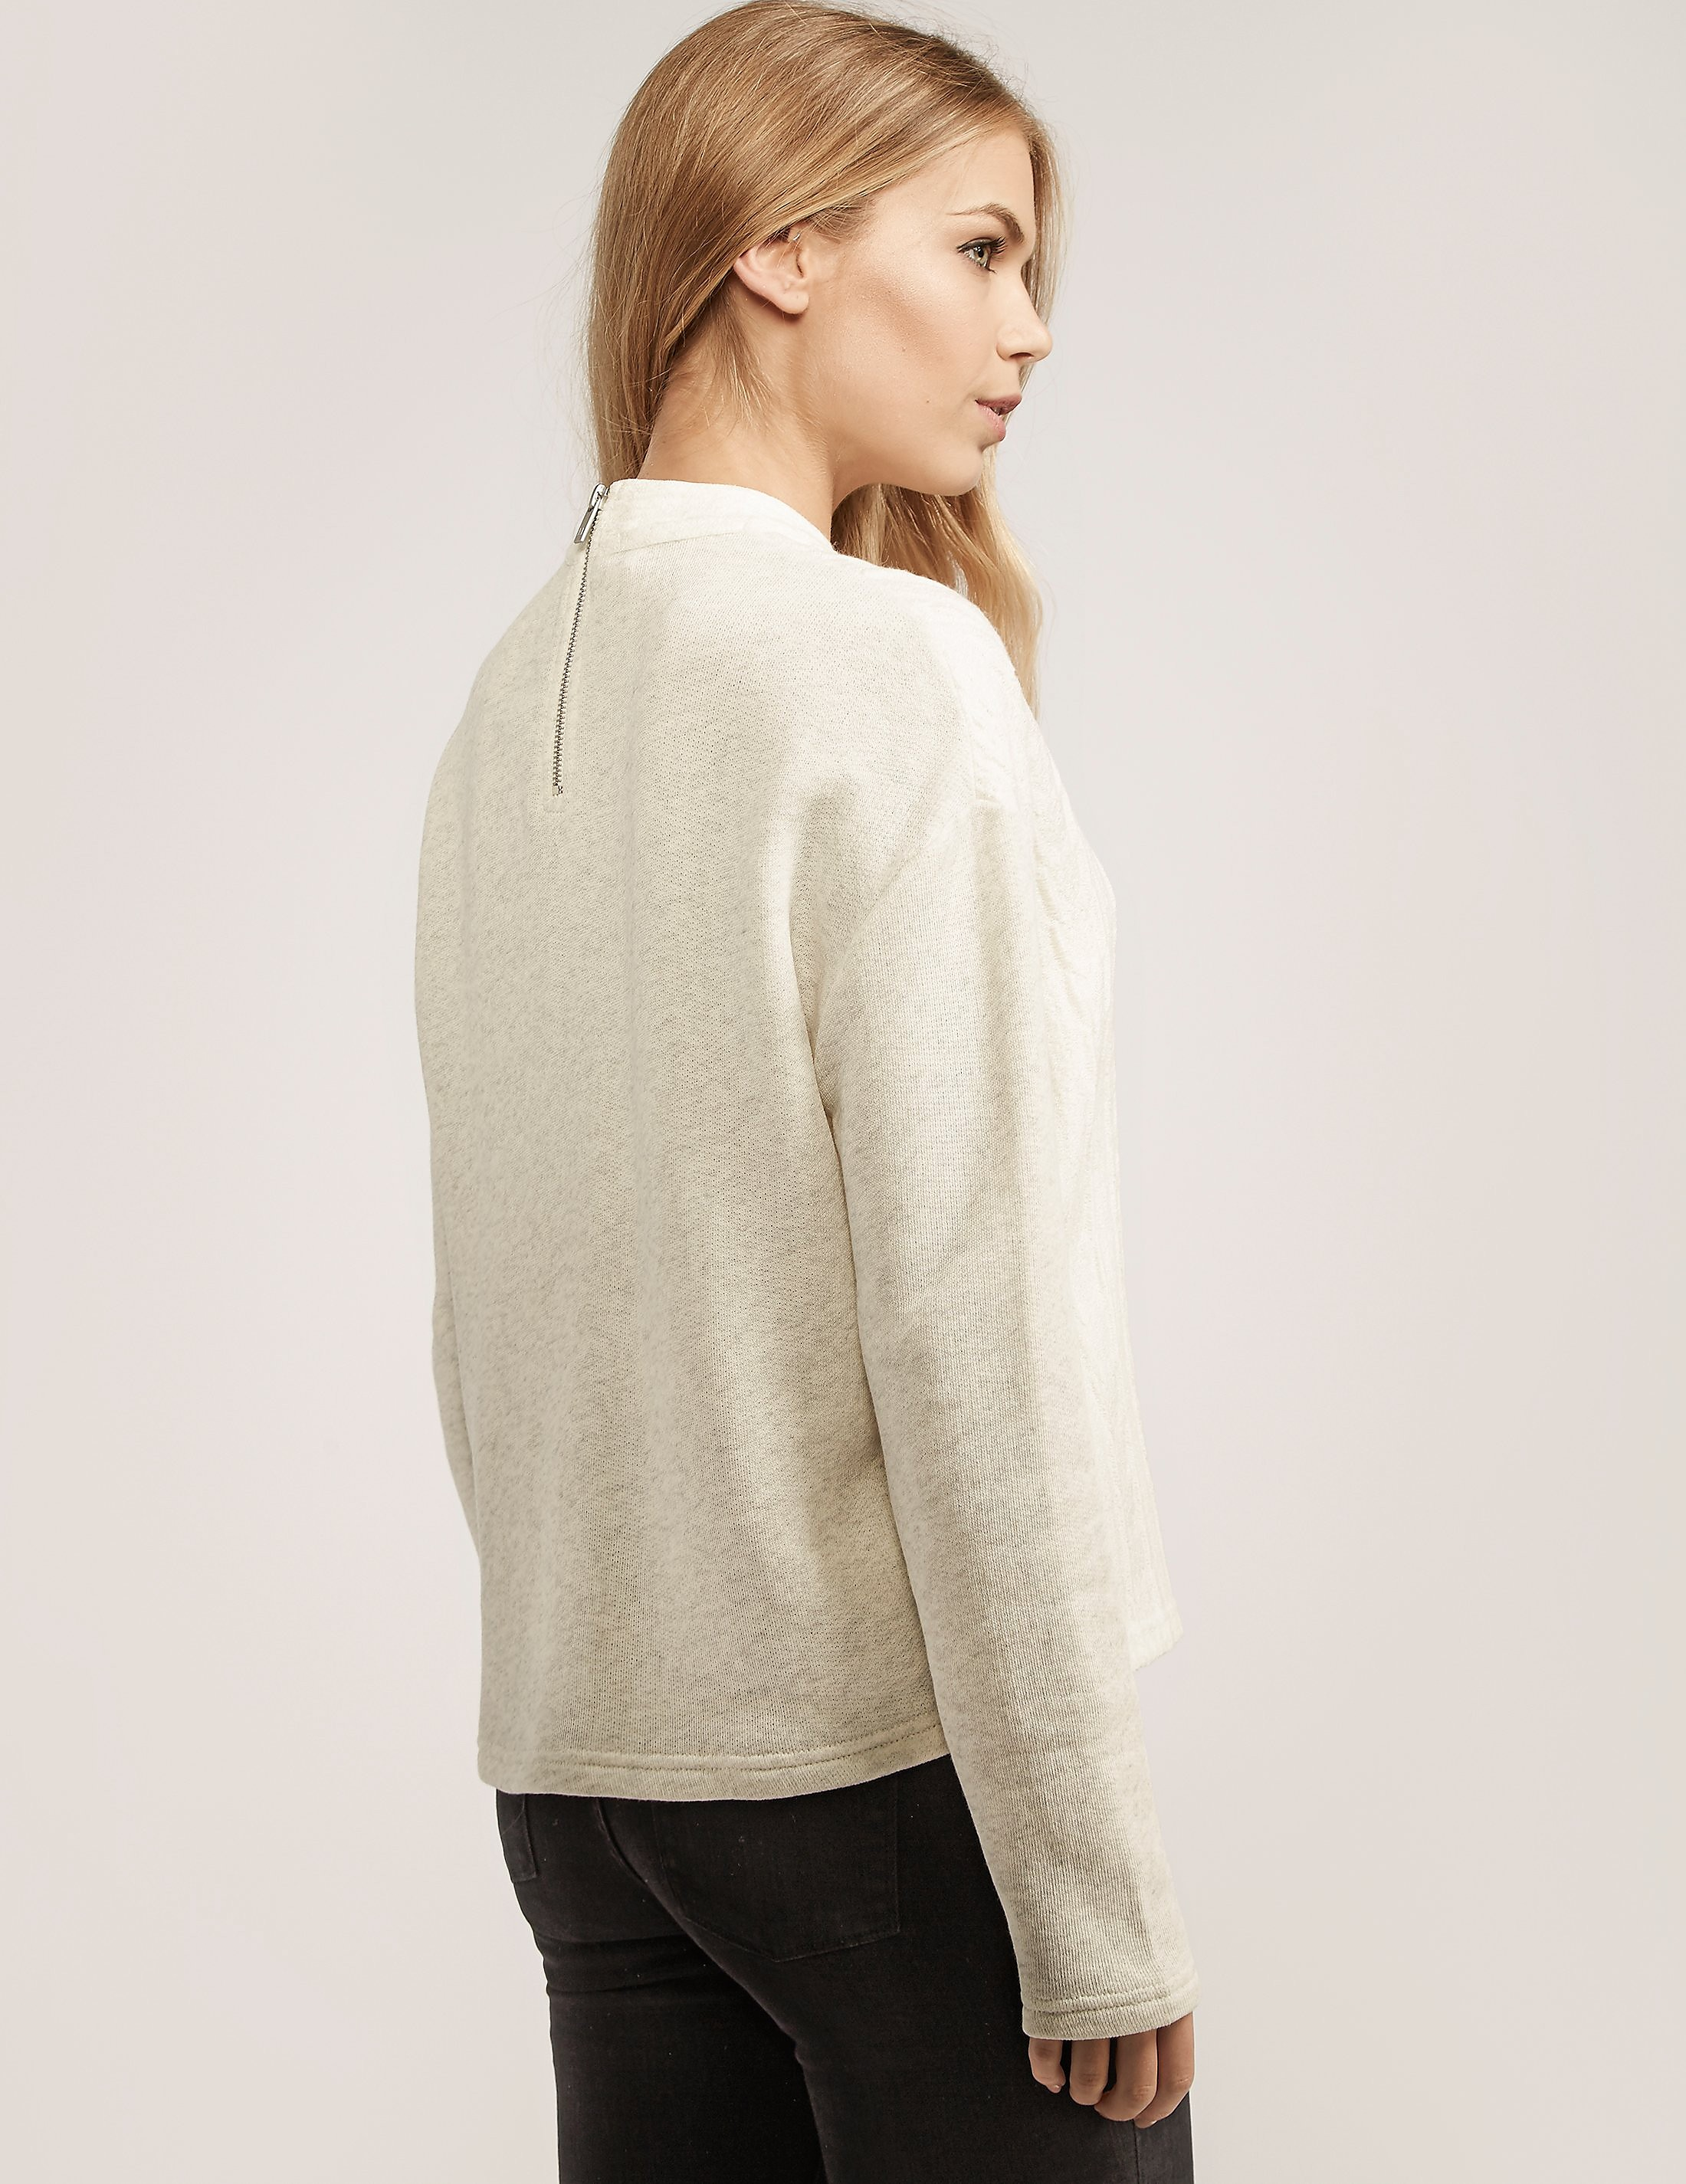 Maison Scotch Cable Front Sweatshirt